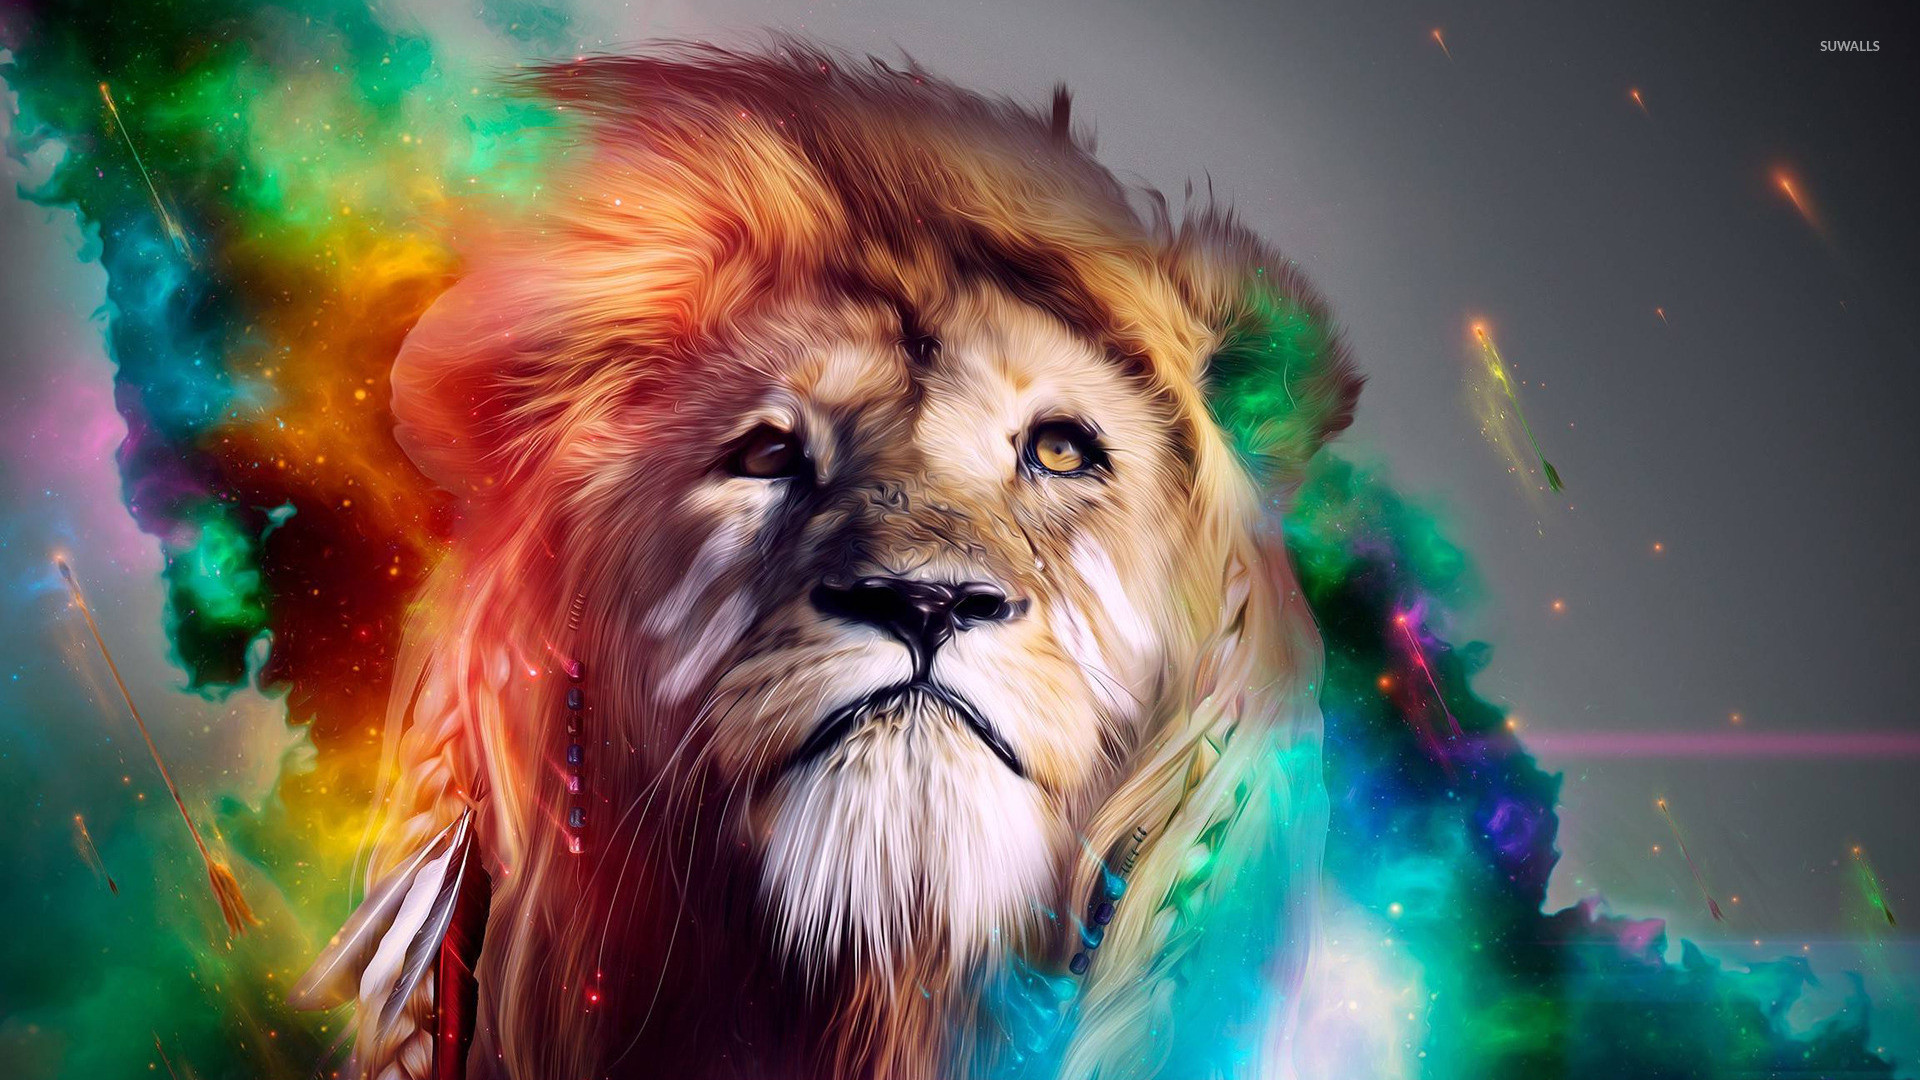 1920x1080 Colorful lion wallpaper - Digital Art wallpapers - #15854